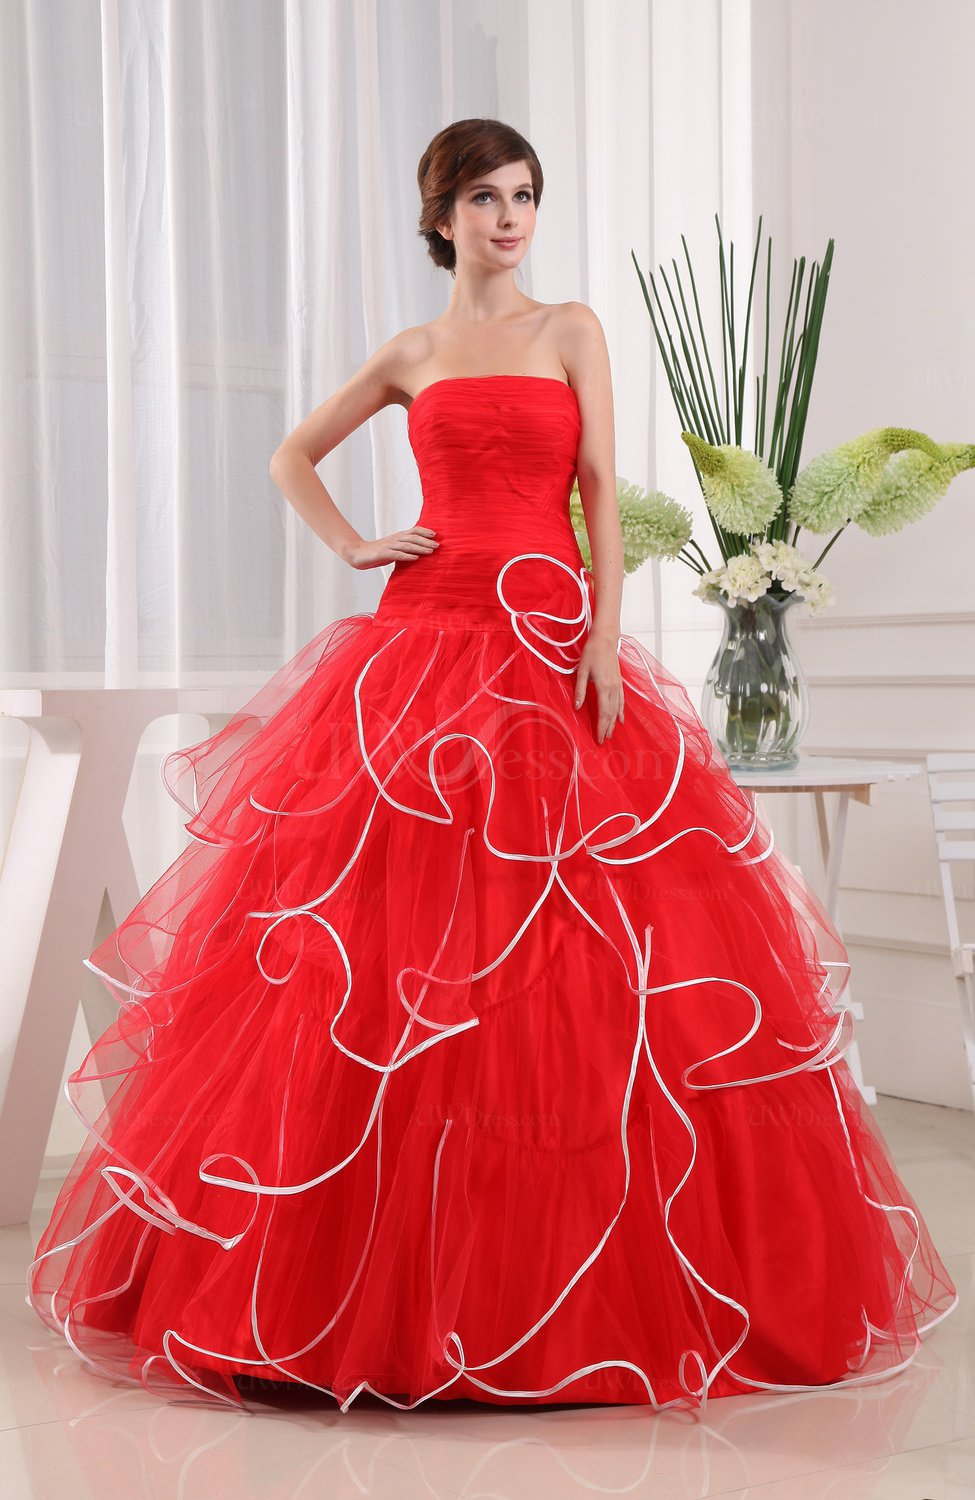 Disney Princess Hall Ball Gown Zip up Floor Length Plainness Bridal ...